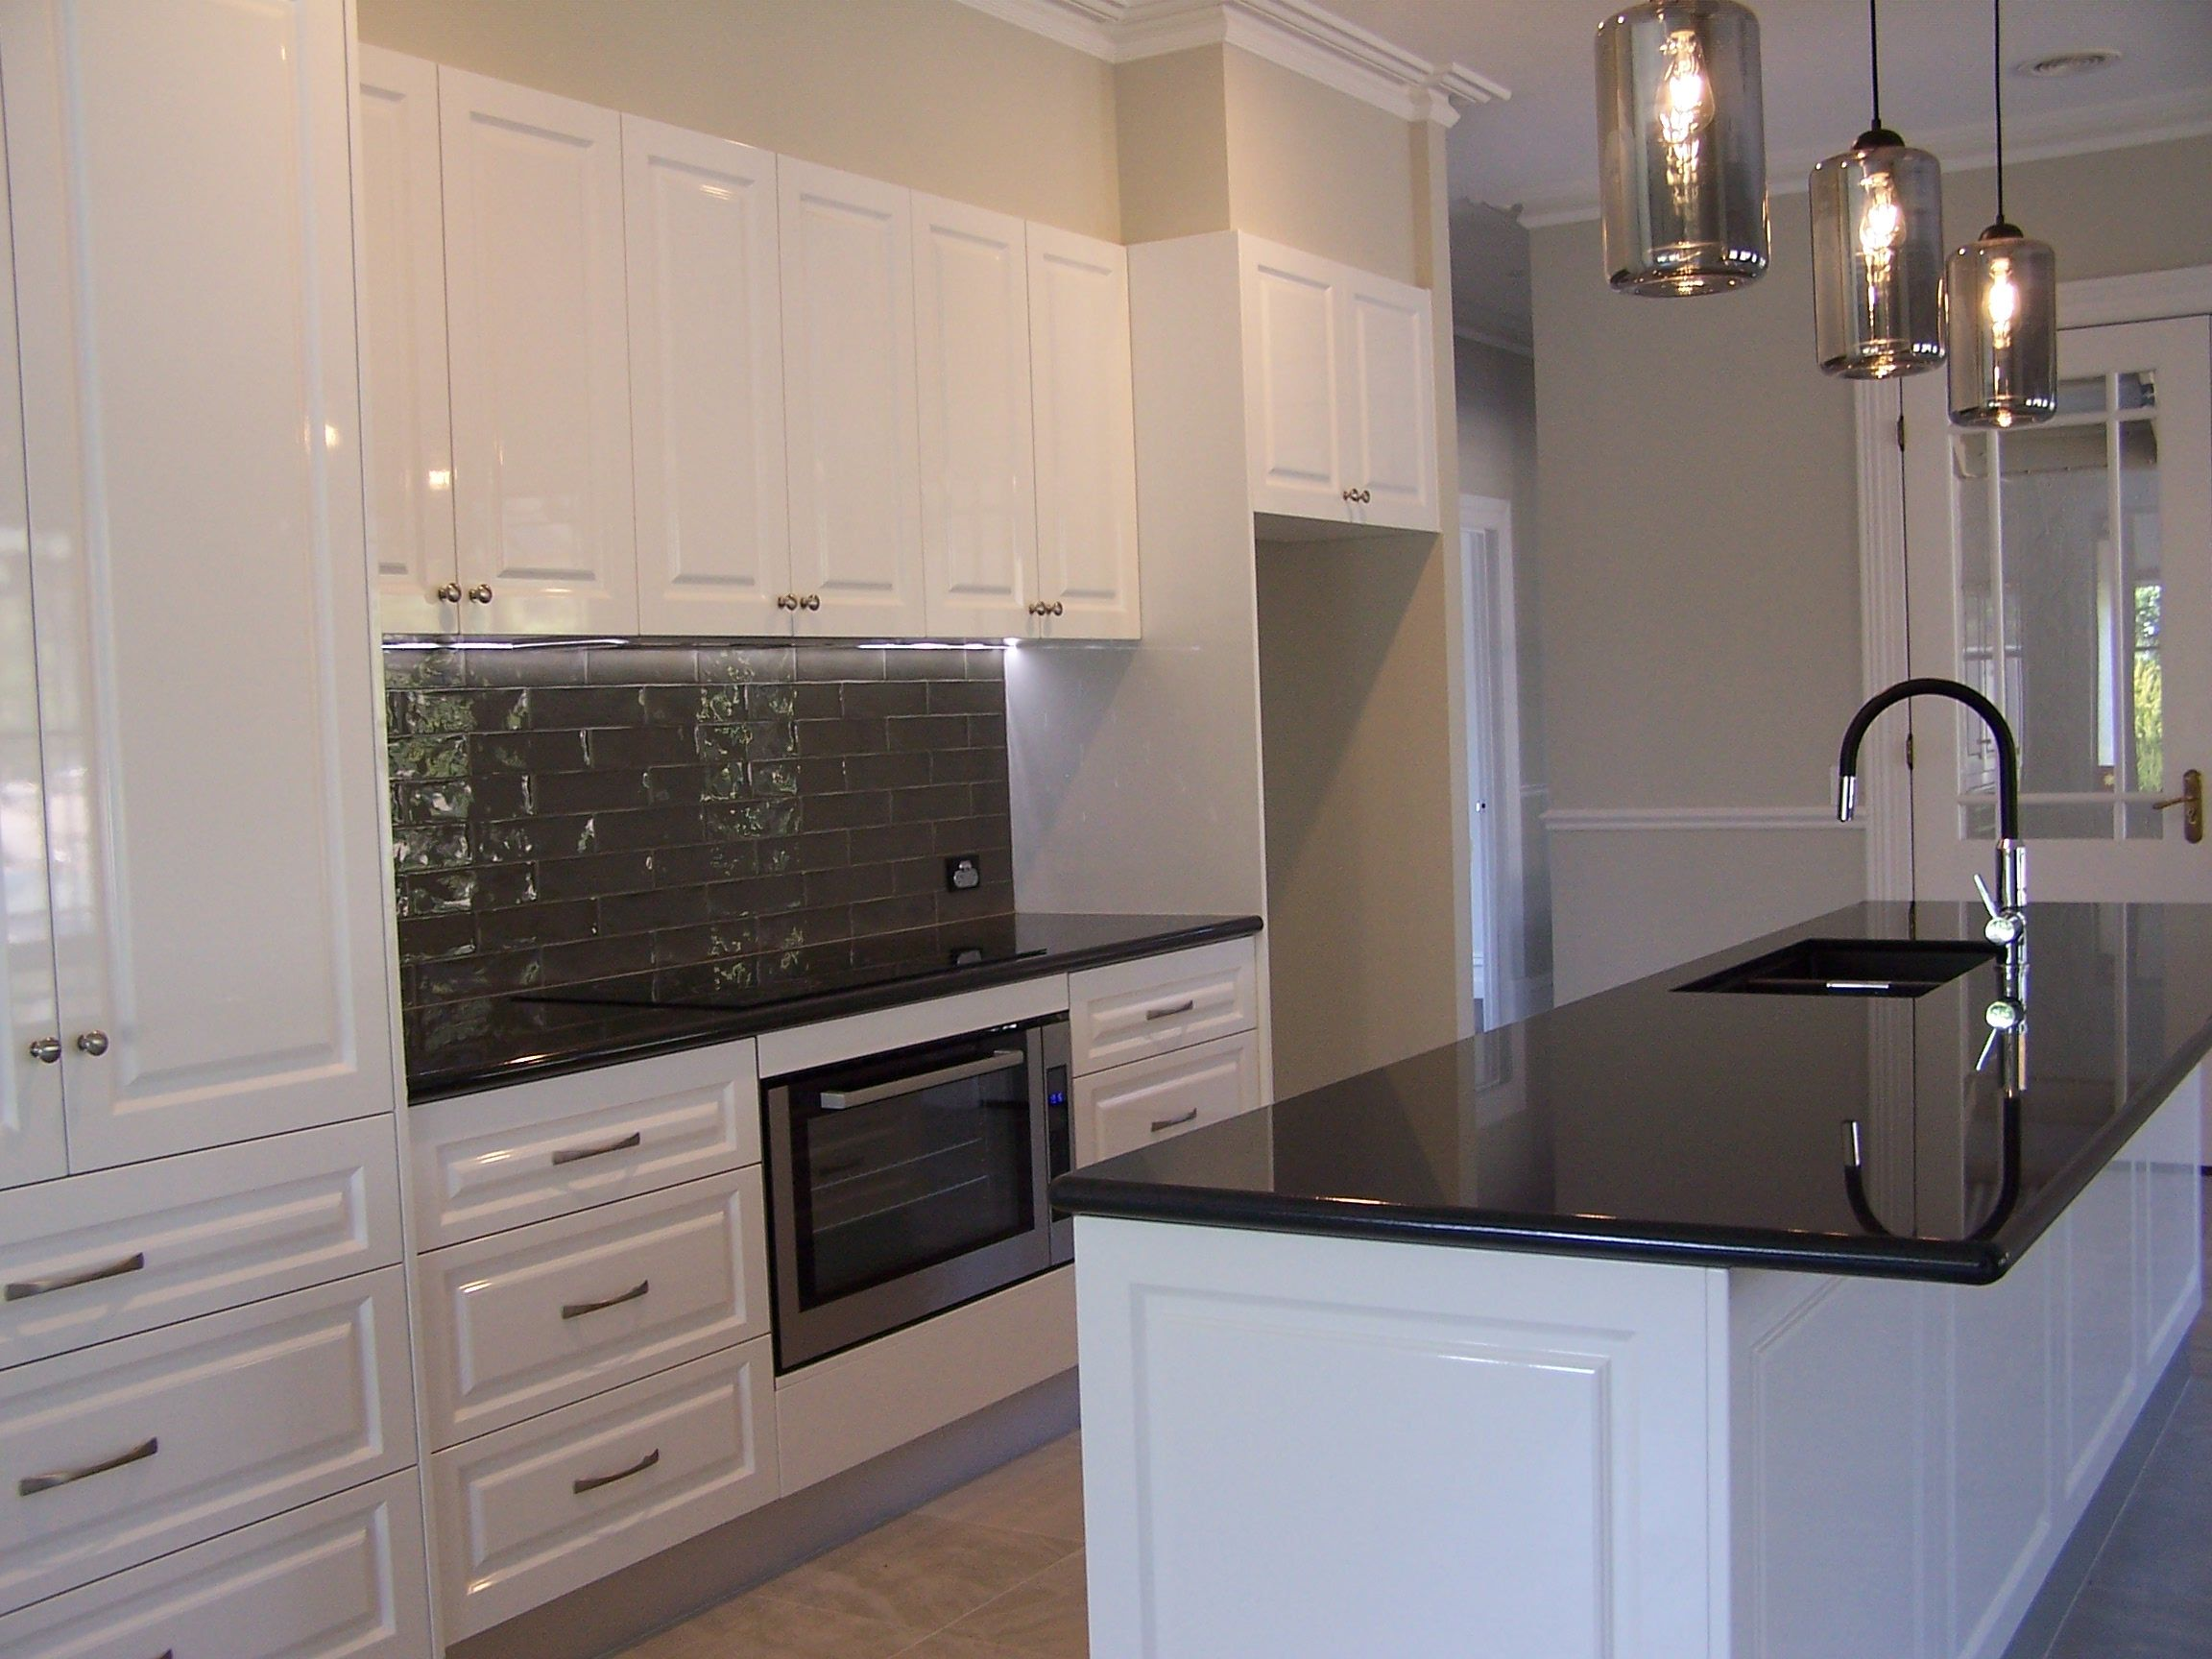 Granite Wrap Countertops This Kitchen Features Jet Black Granite Benchtops With